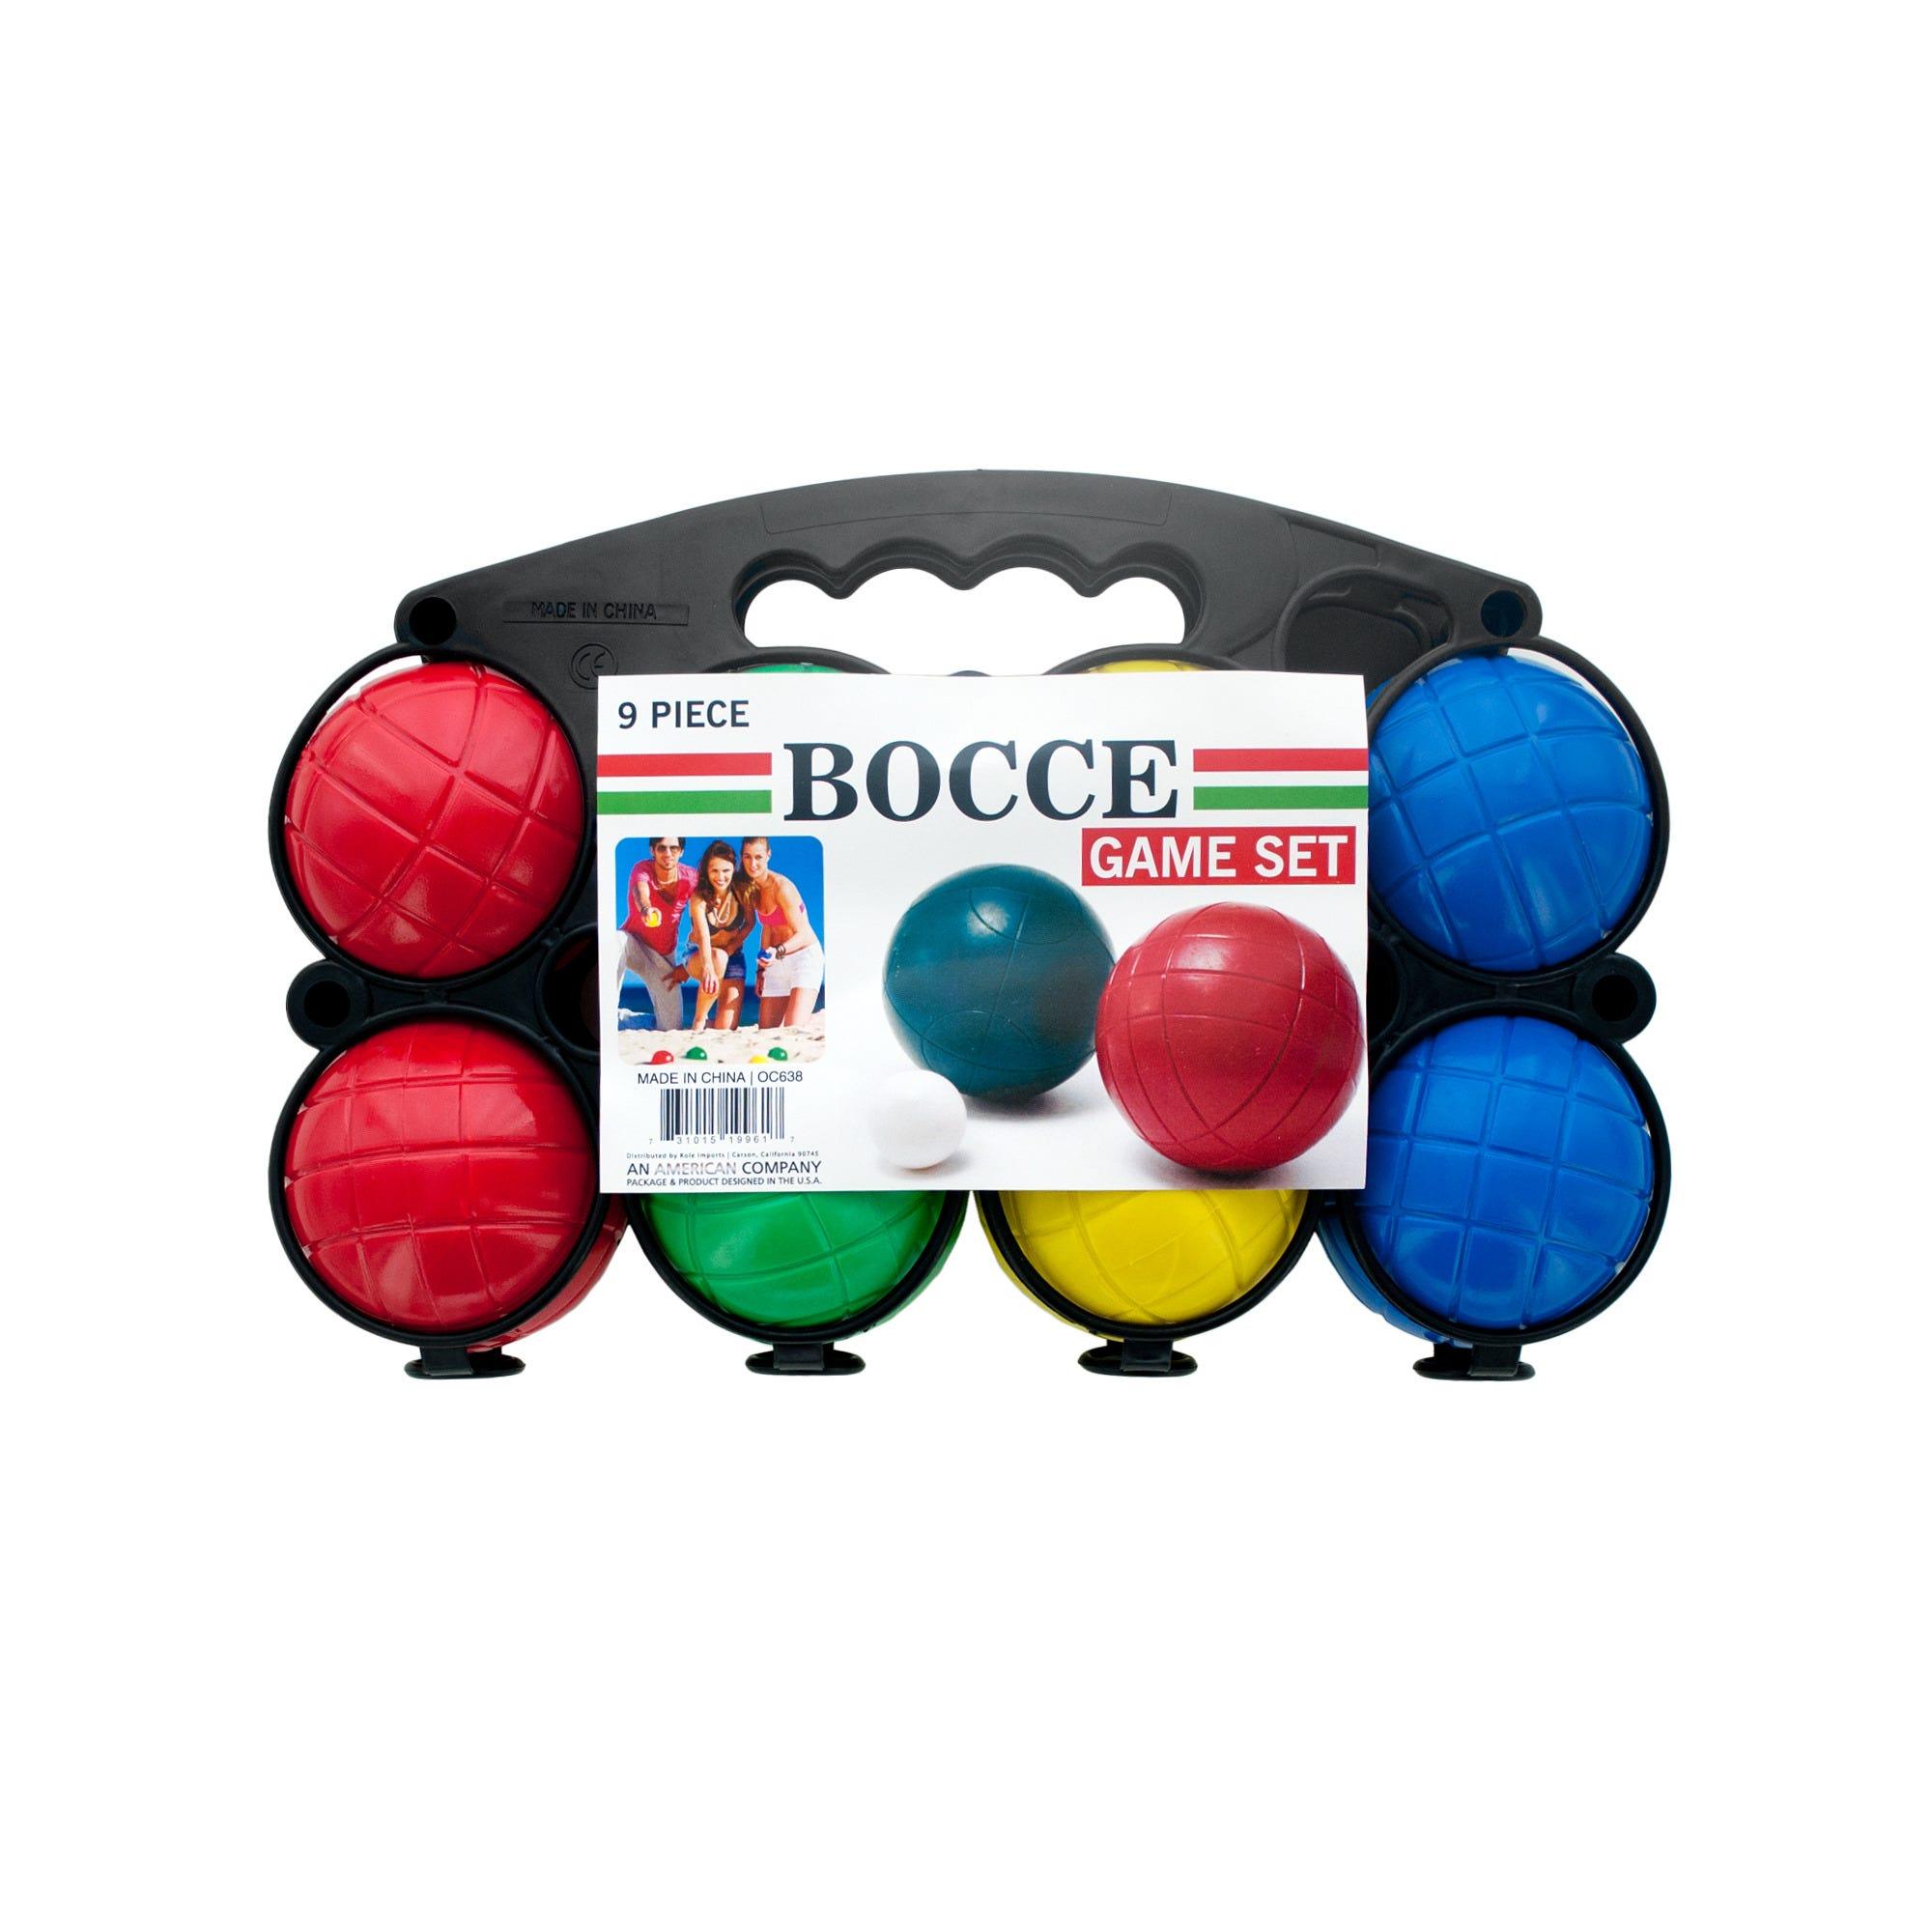 Bocce Game Set- Qty 4